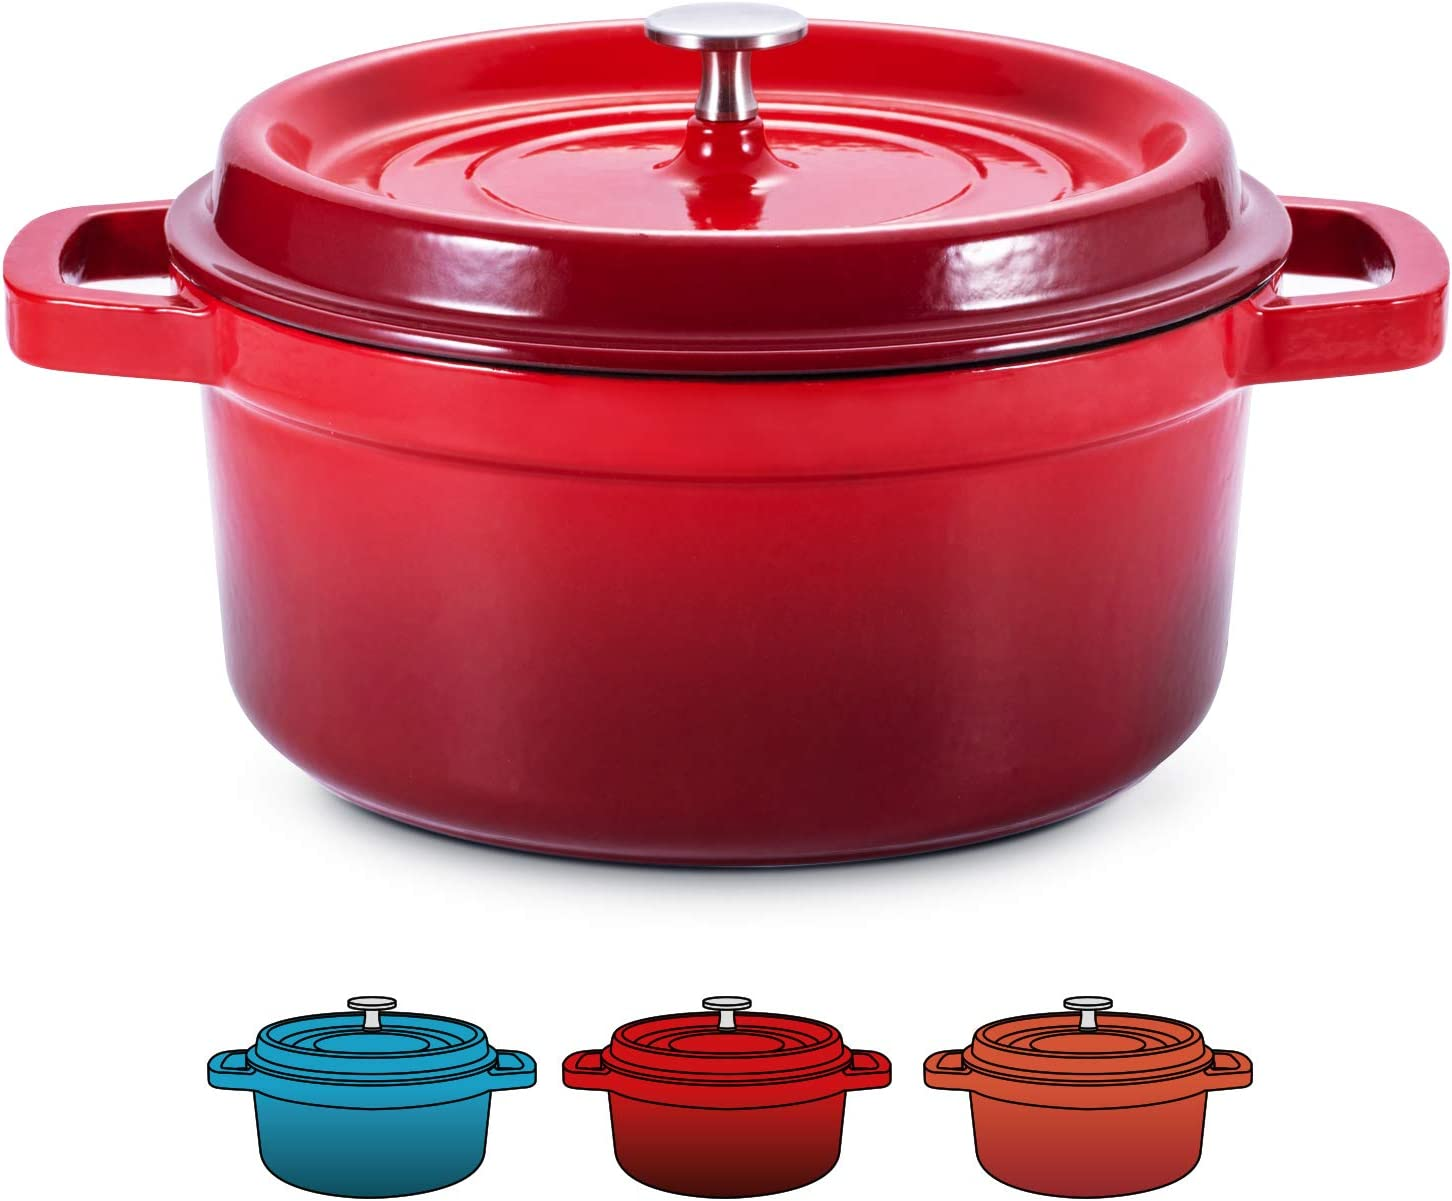 SULIVES Enameled Cast Iron Dutch Oven Bread Baking Pot with Lid,Red,5qt